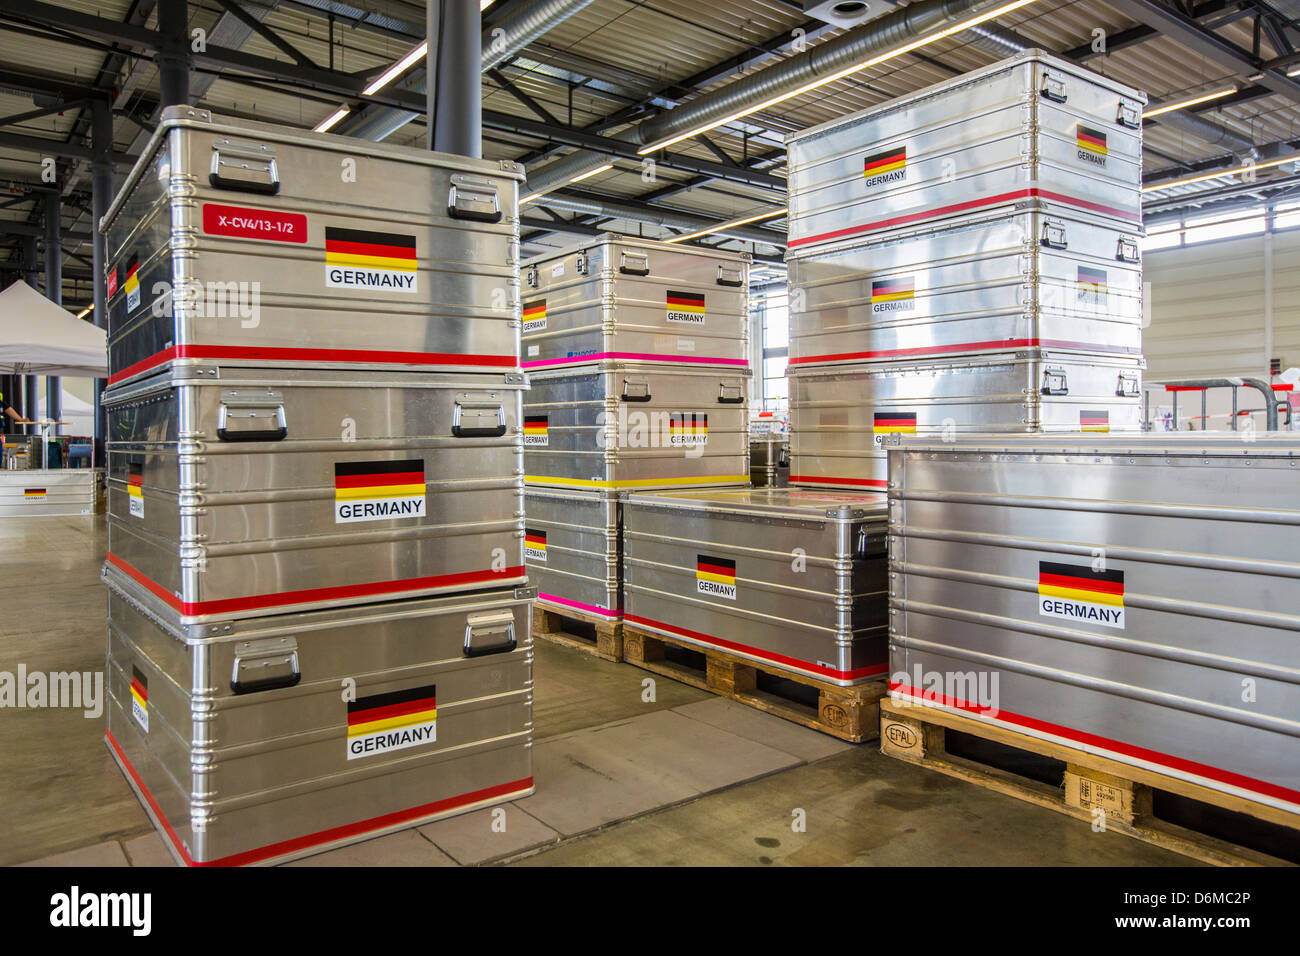 Aluminum transport boxes for emergency equipment. German flag. German disaster relief team unit, THW. - Stock Image